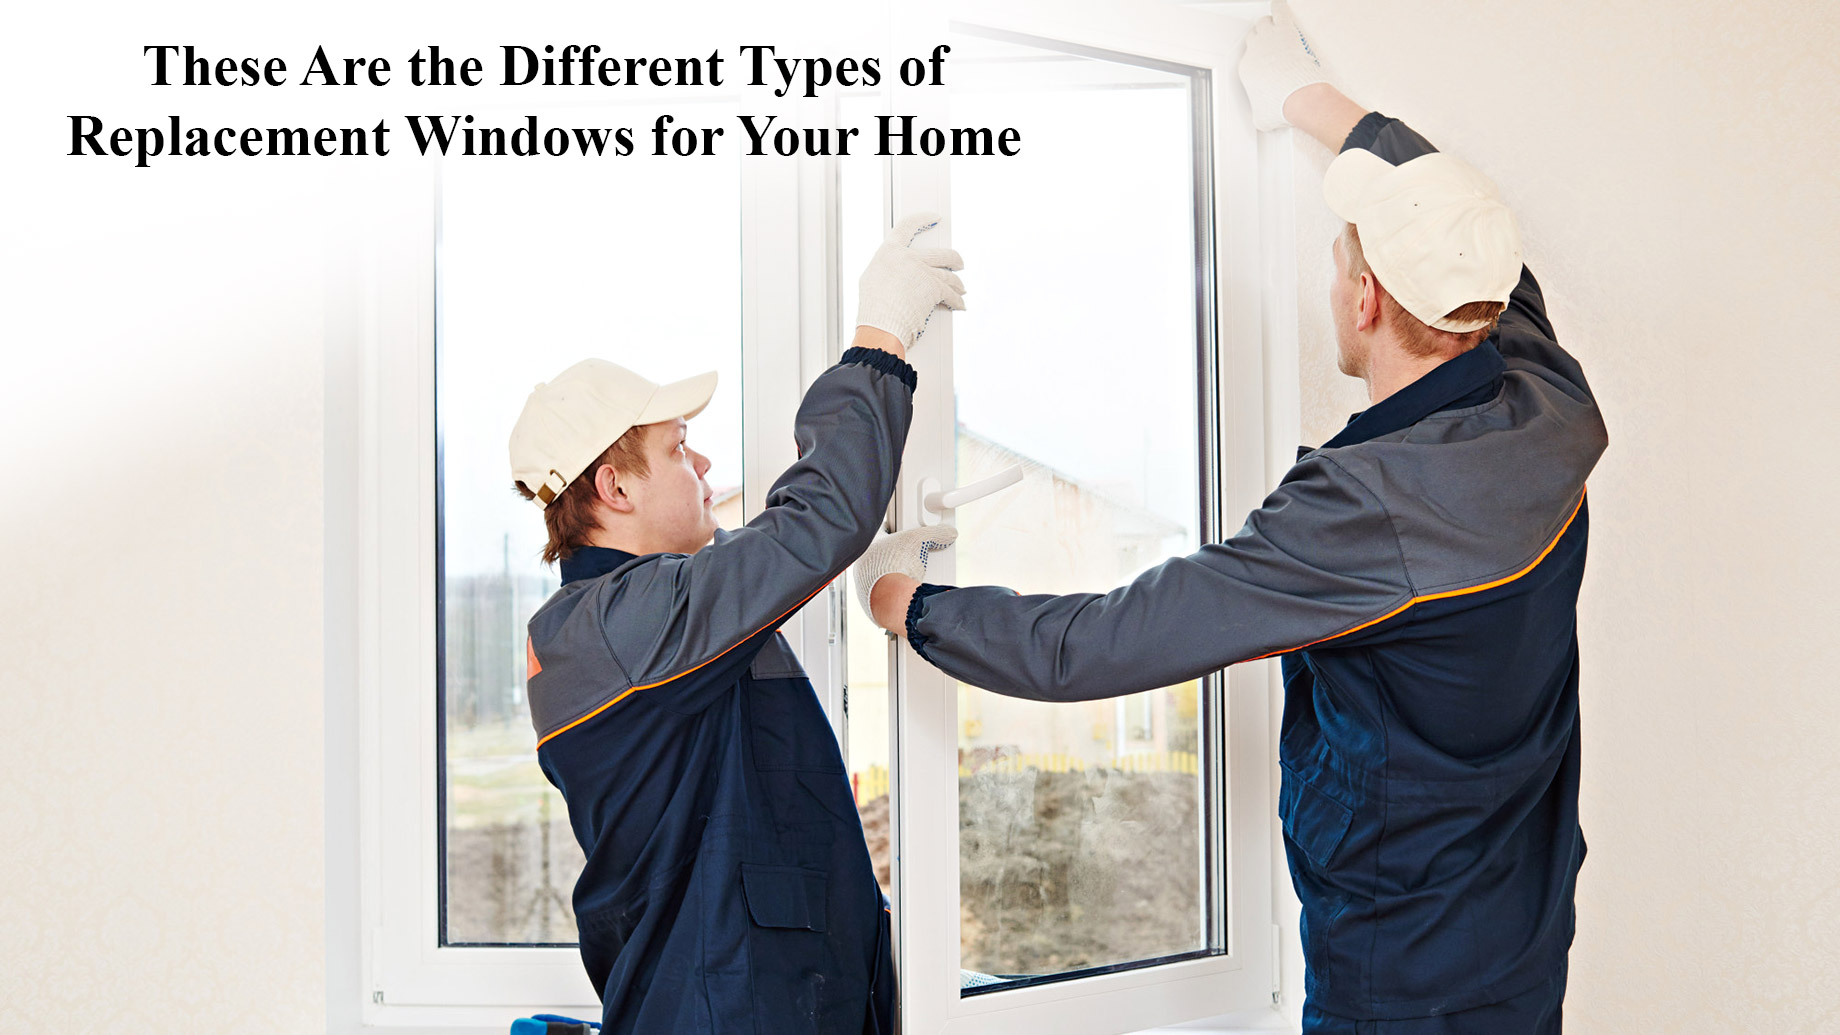 These Are the Different Types of Replacement Windows for Your Home